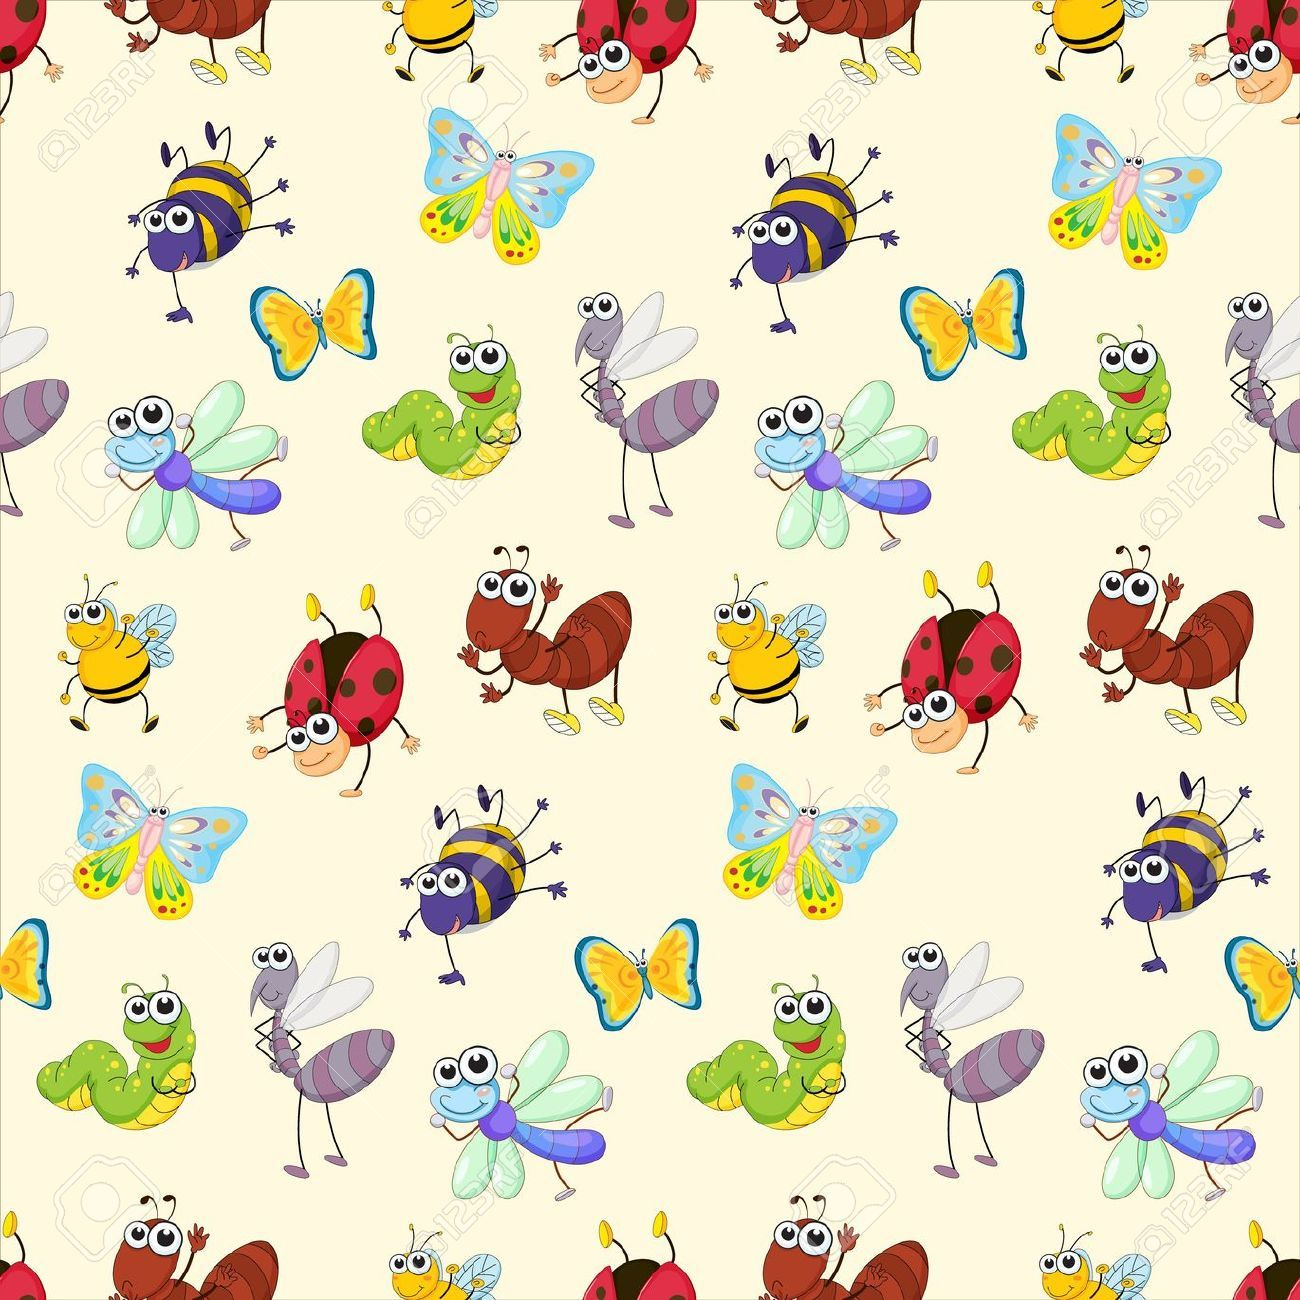 Top Free Cute Bug Backgrounds